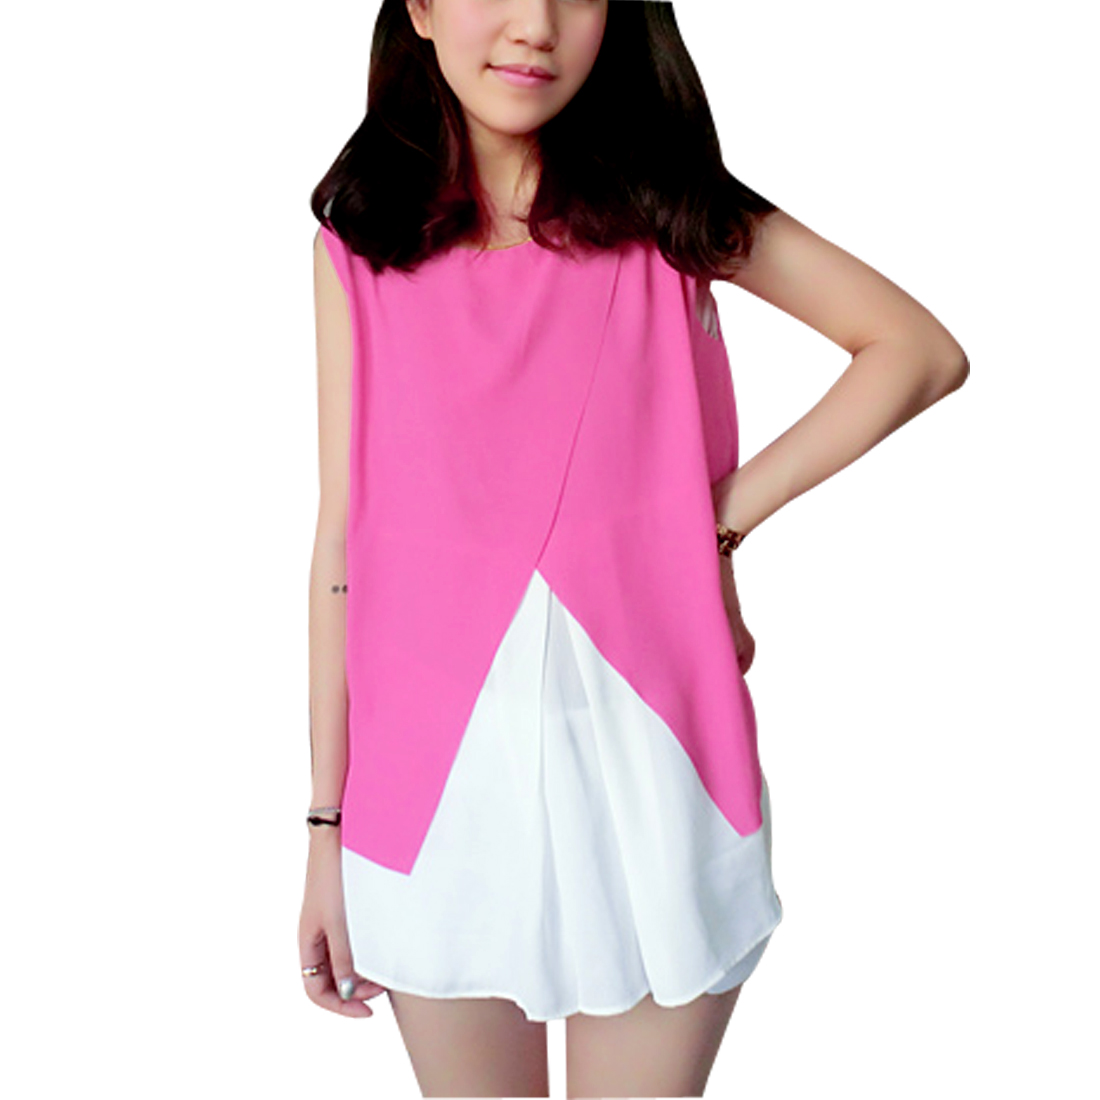 Laides Round Neck Sleeveless Semi Sheer Top Shirt Fuchsia White S